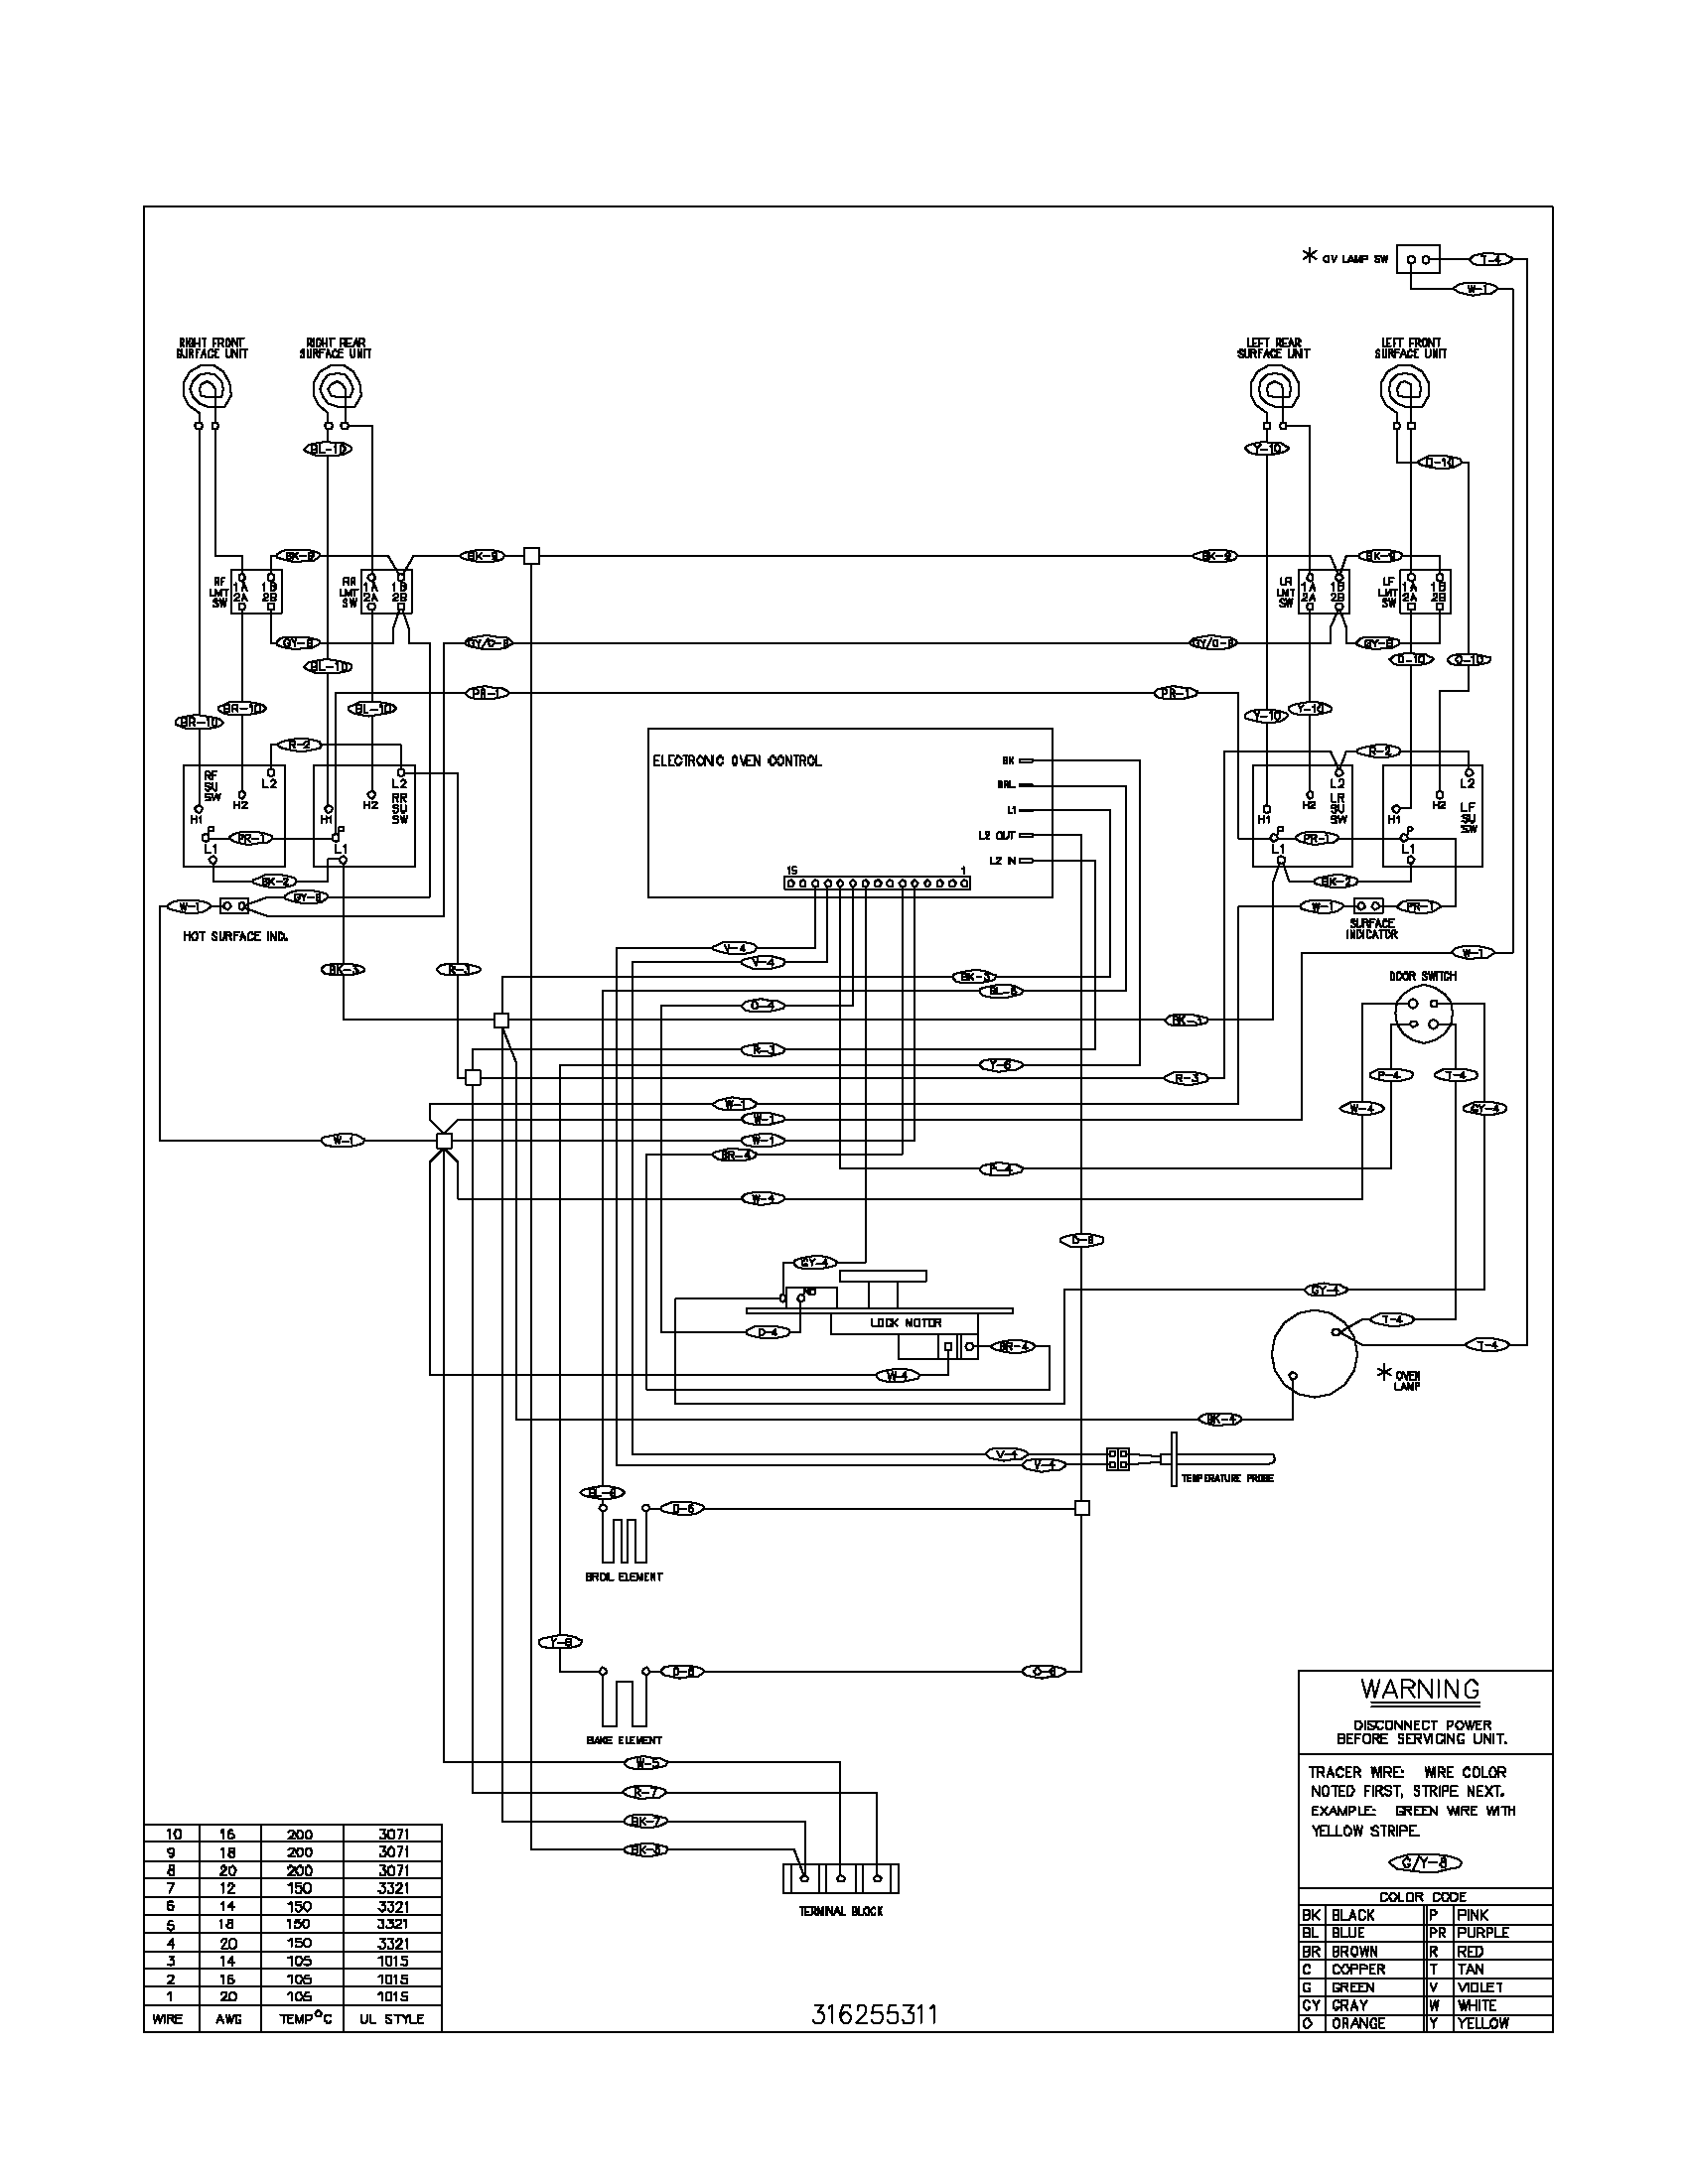 wiring diagram parts vdsl wiring diagram wiring gfci outlets in series \u2022 wiring DSL Splitter Wiring -Diagram at soozxer.org